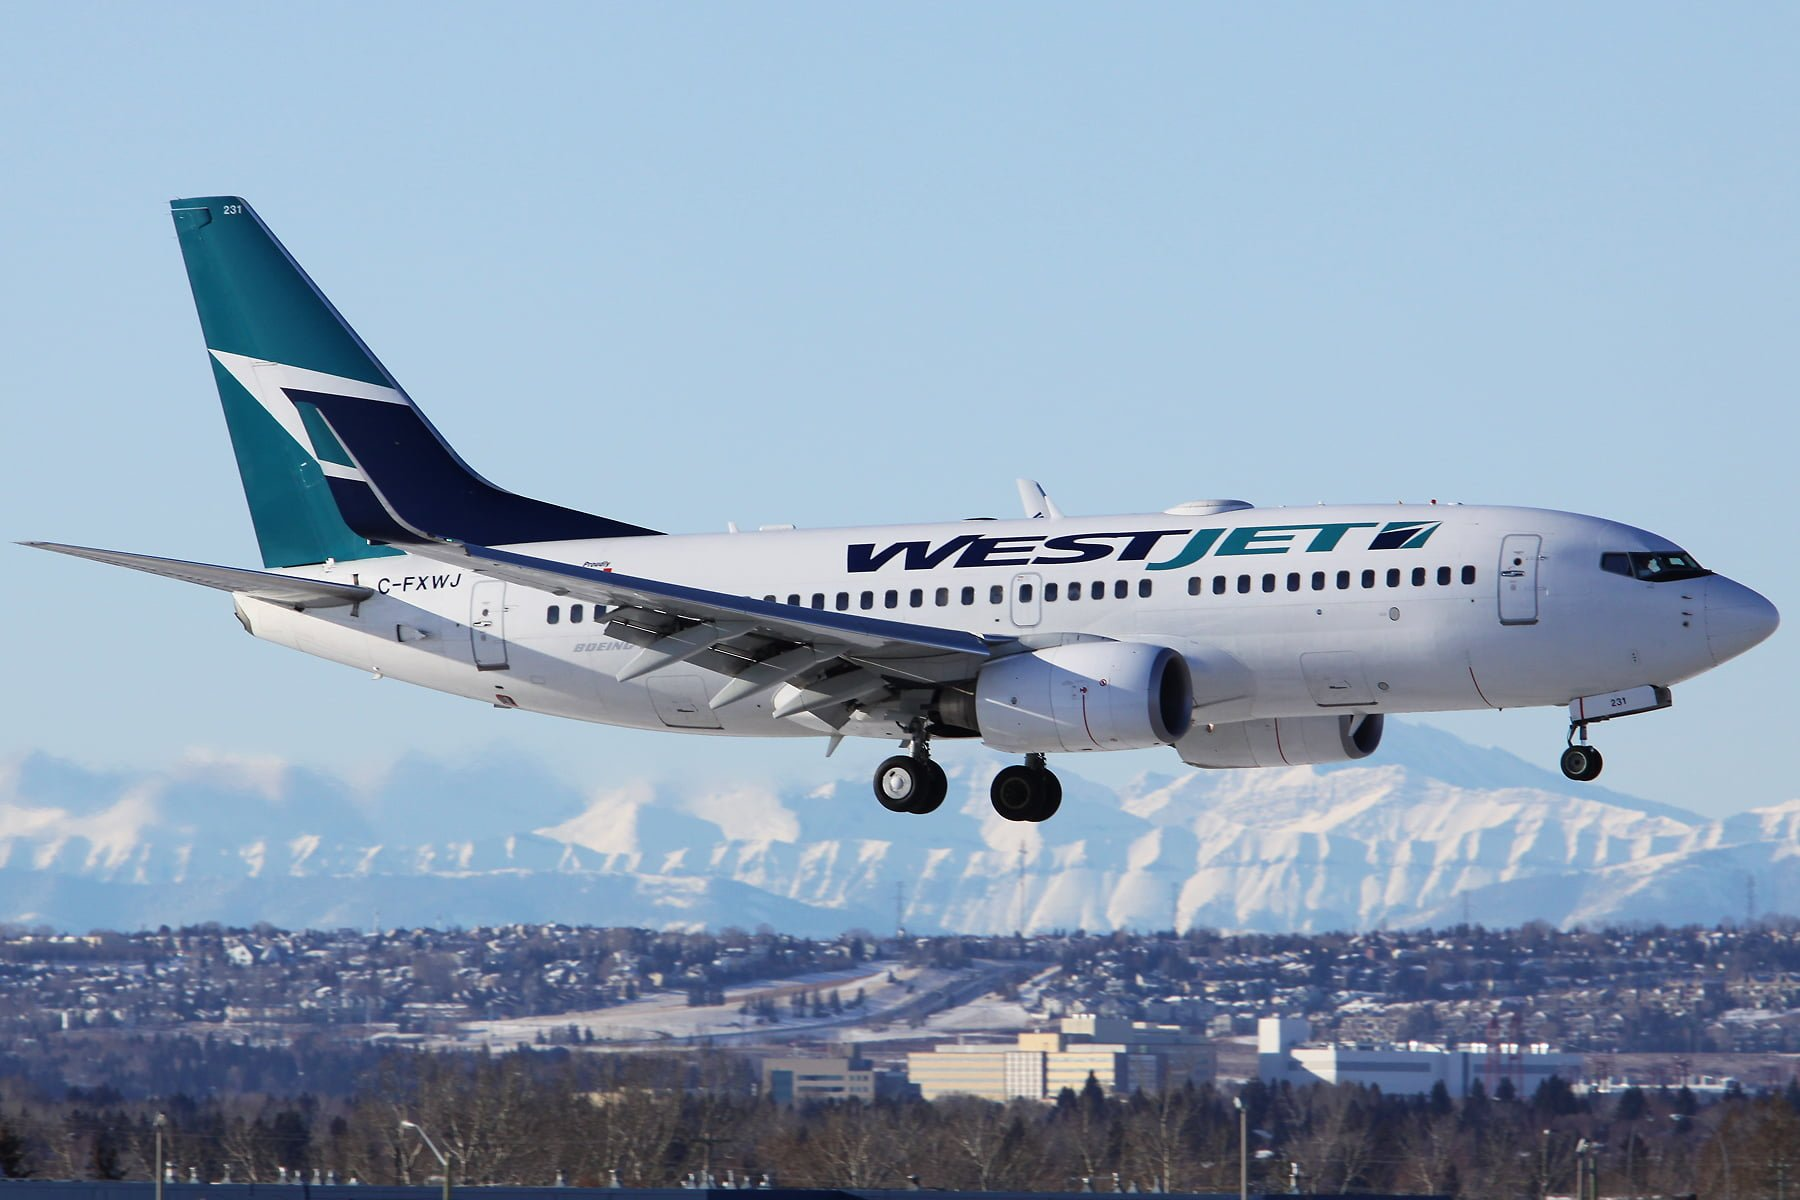 WestJet To Reduce 88 Weekly Flights Between BC And Alberta - WestJet To Offer $112 Direct Flights From Abbotsford-Las Vegas - Vancouver Man Shocked To Find Someone Flew Under His Name On WestJet Flight / westjet